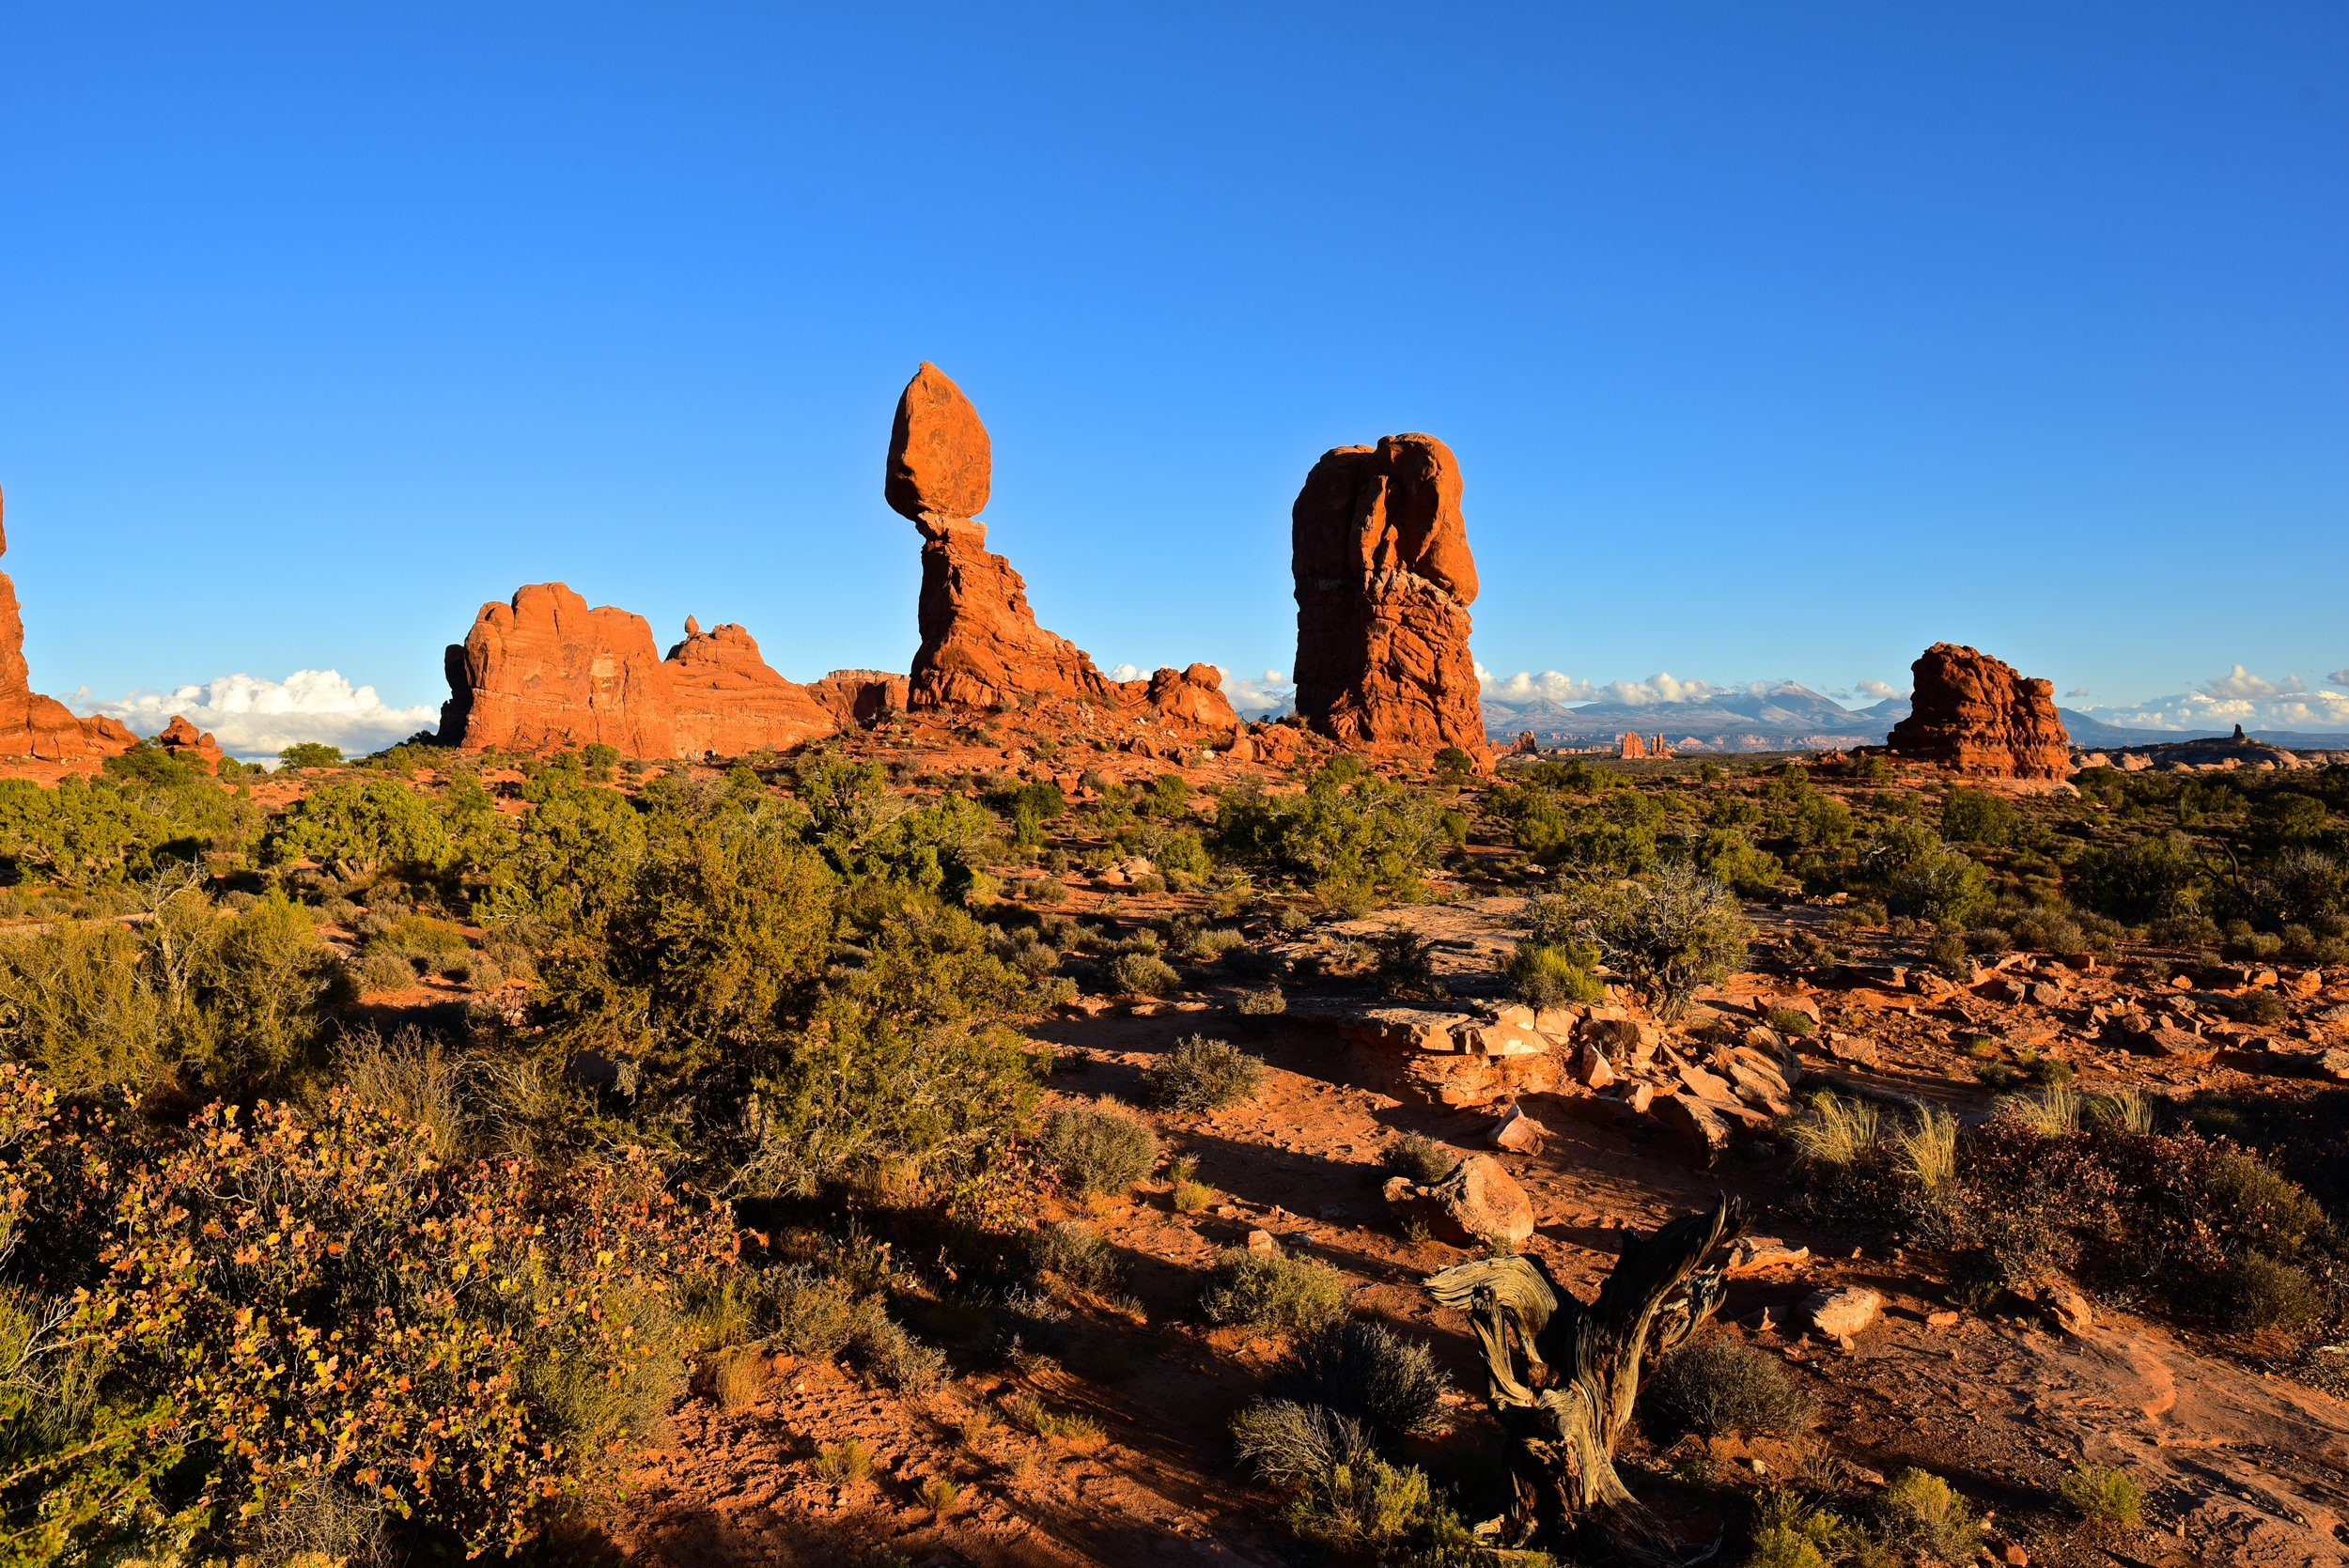 Balancing Rock in Arches National Park